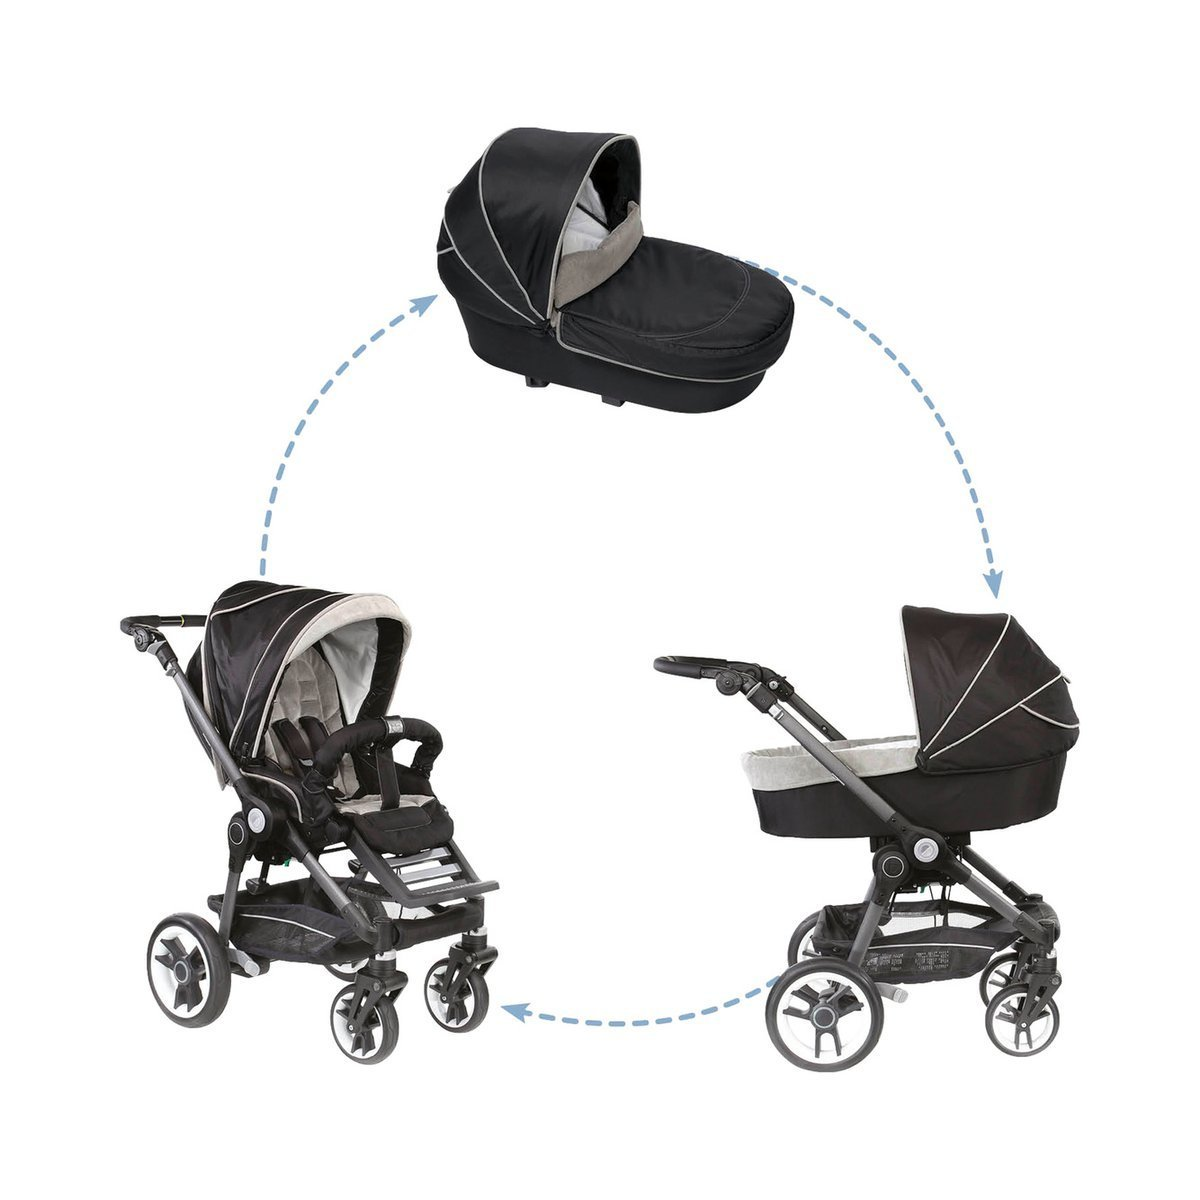 Teutonia Kinderwagen im Vergleich ++ Mistral S, Be you